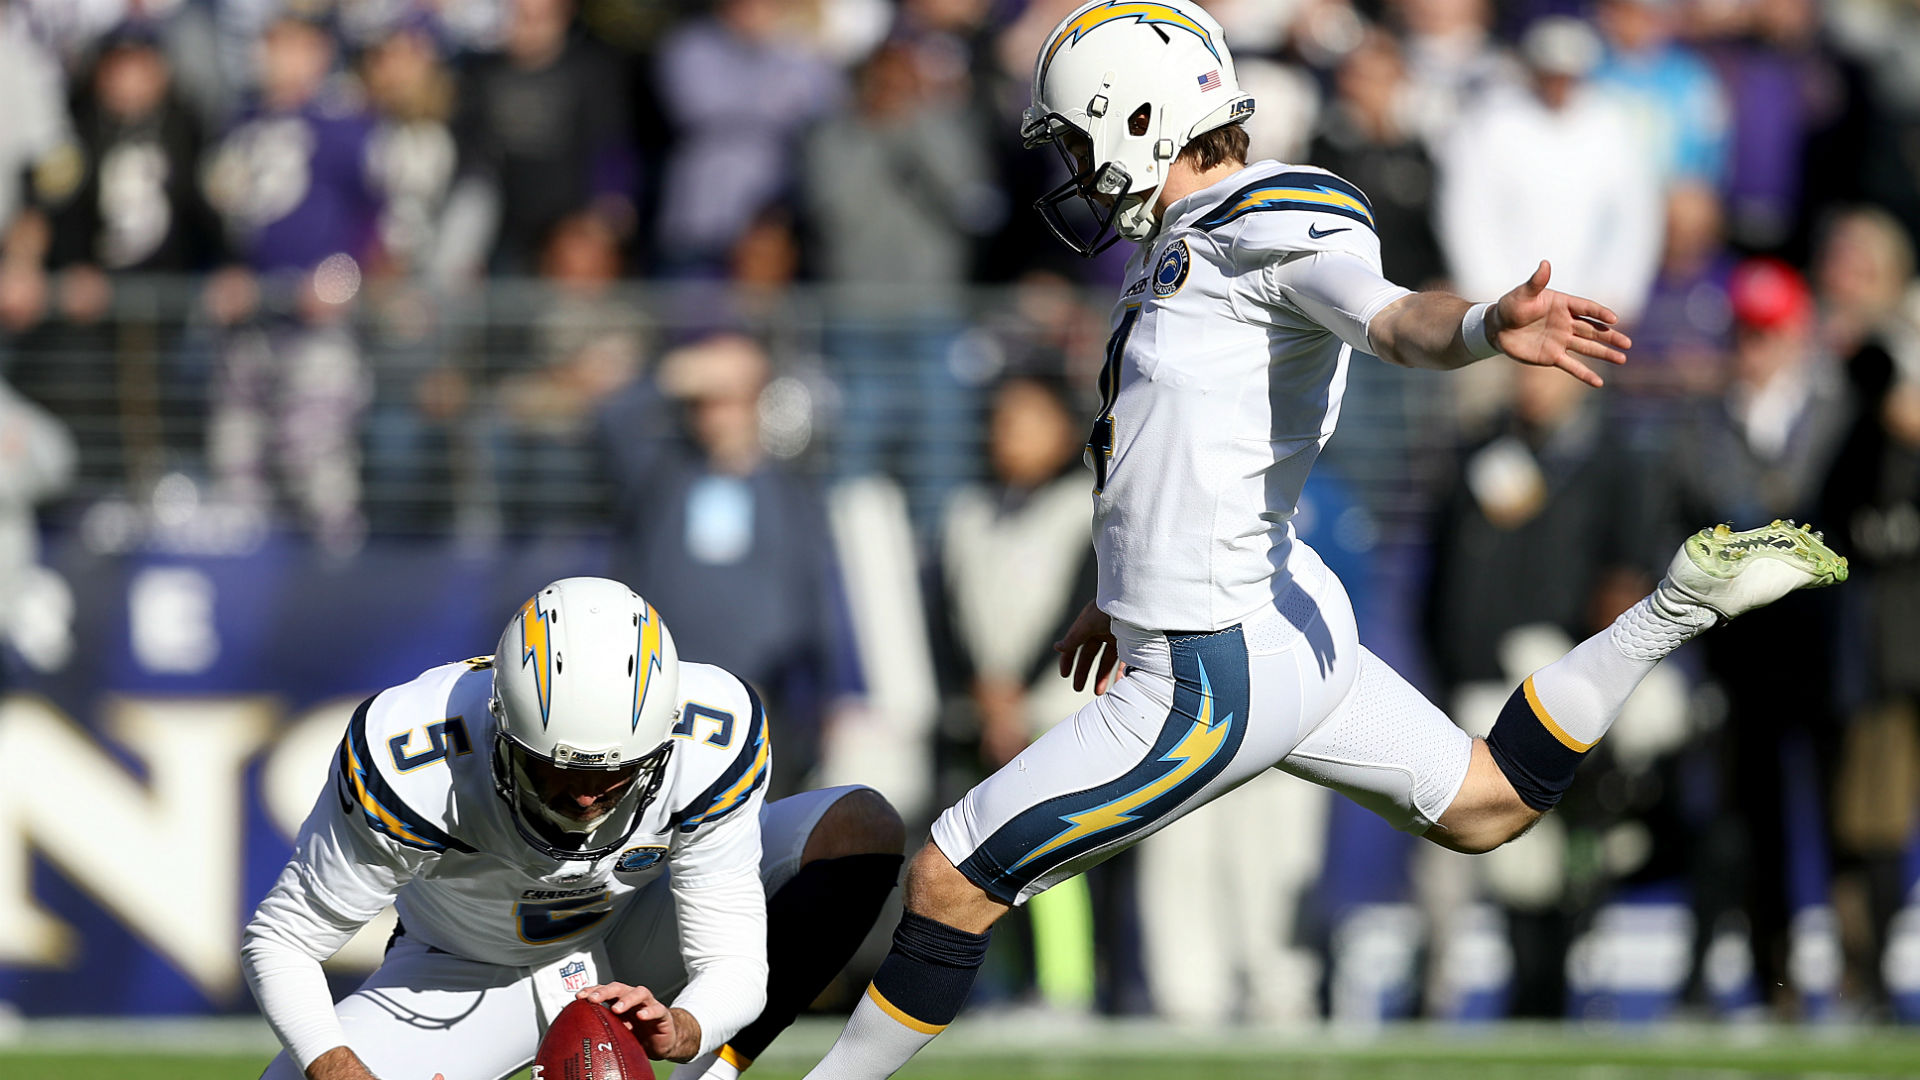 Michael Badgley injury update: Chargers kicker (groin) out vs. Colts, report says